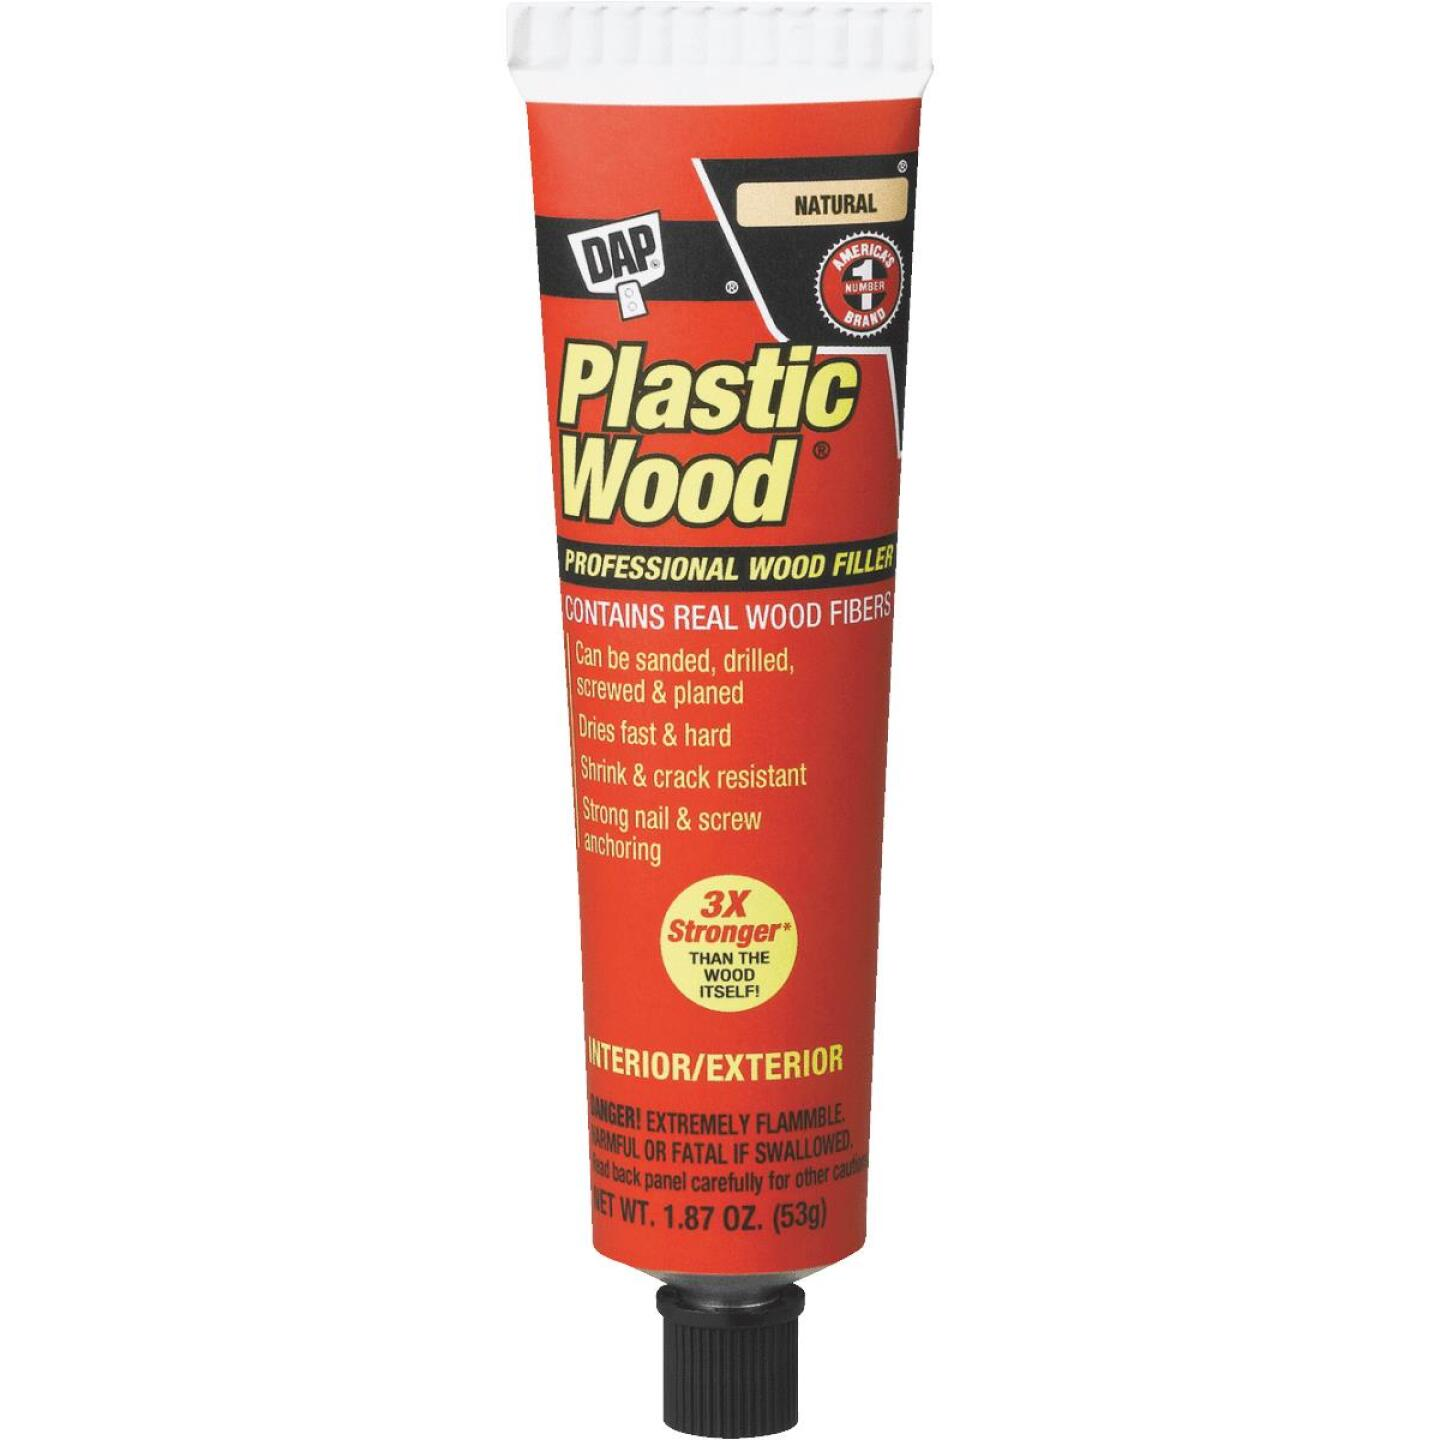 DAP Plastic Wood 1.8 Oz. Natural Solvent Professional Wood Filler Image 1